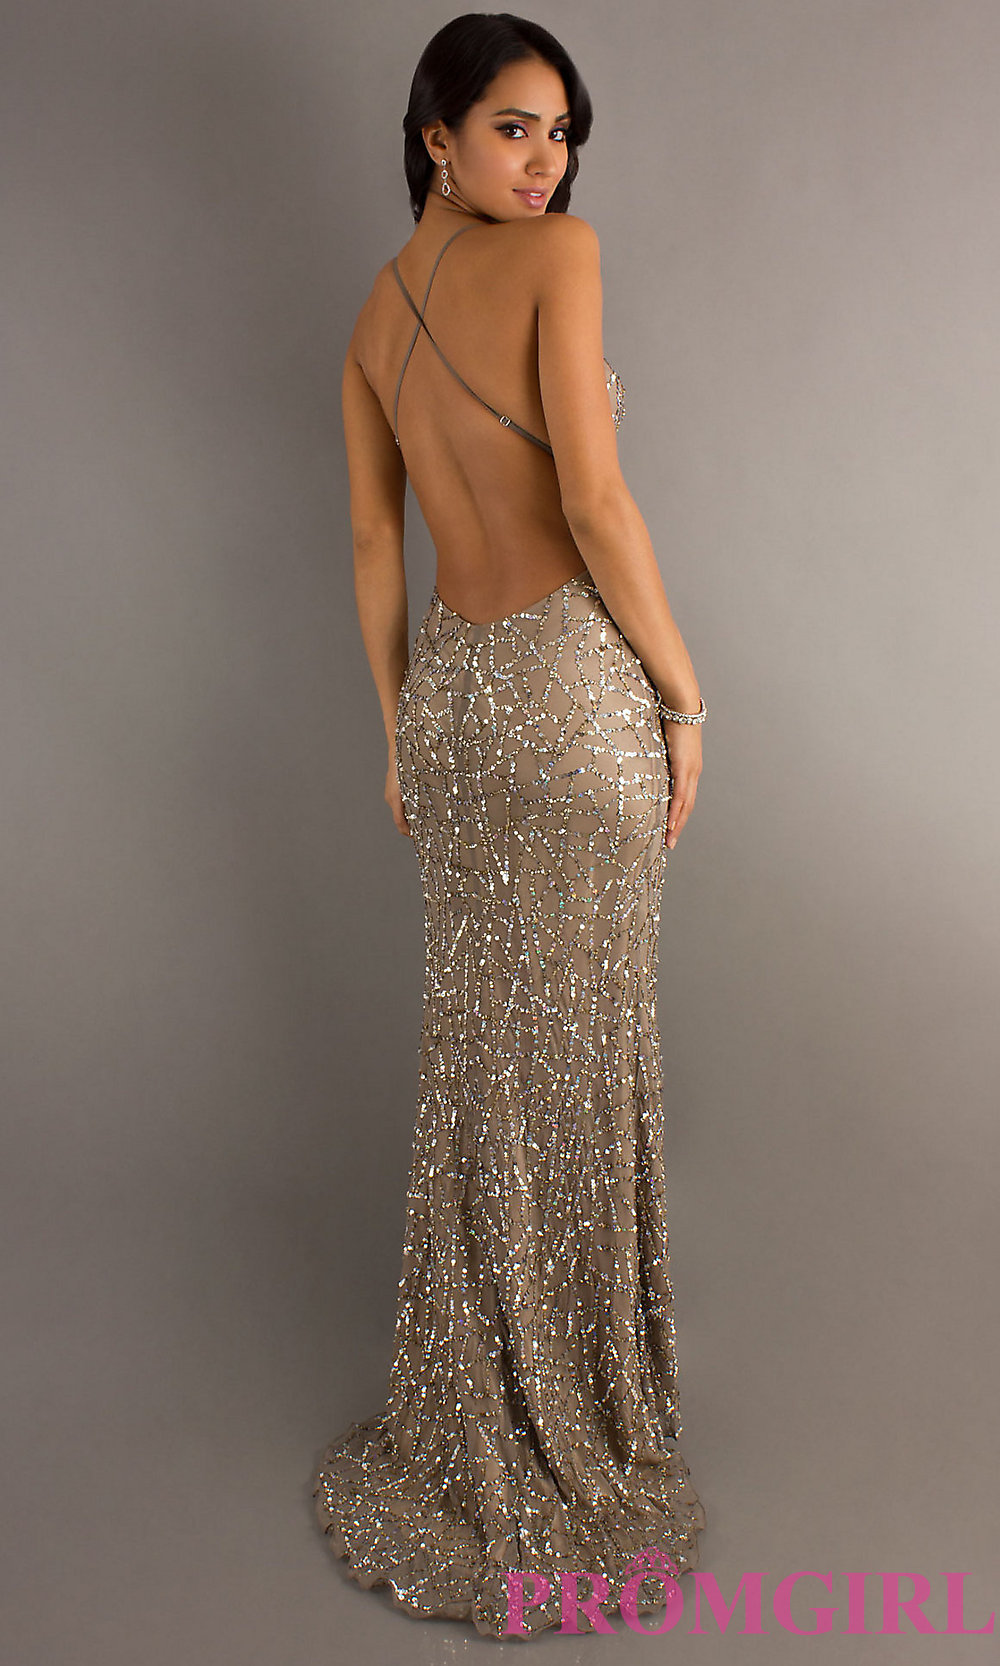 Evening Gowns Backless & Help You Stand Out - Dresses Ask